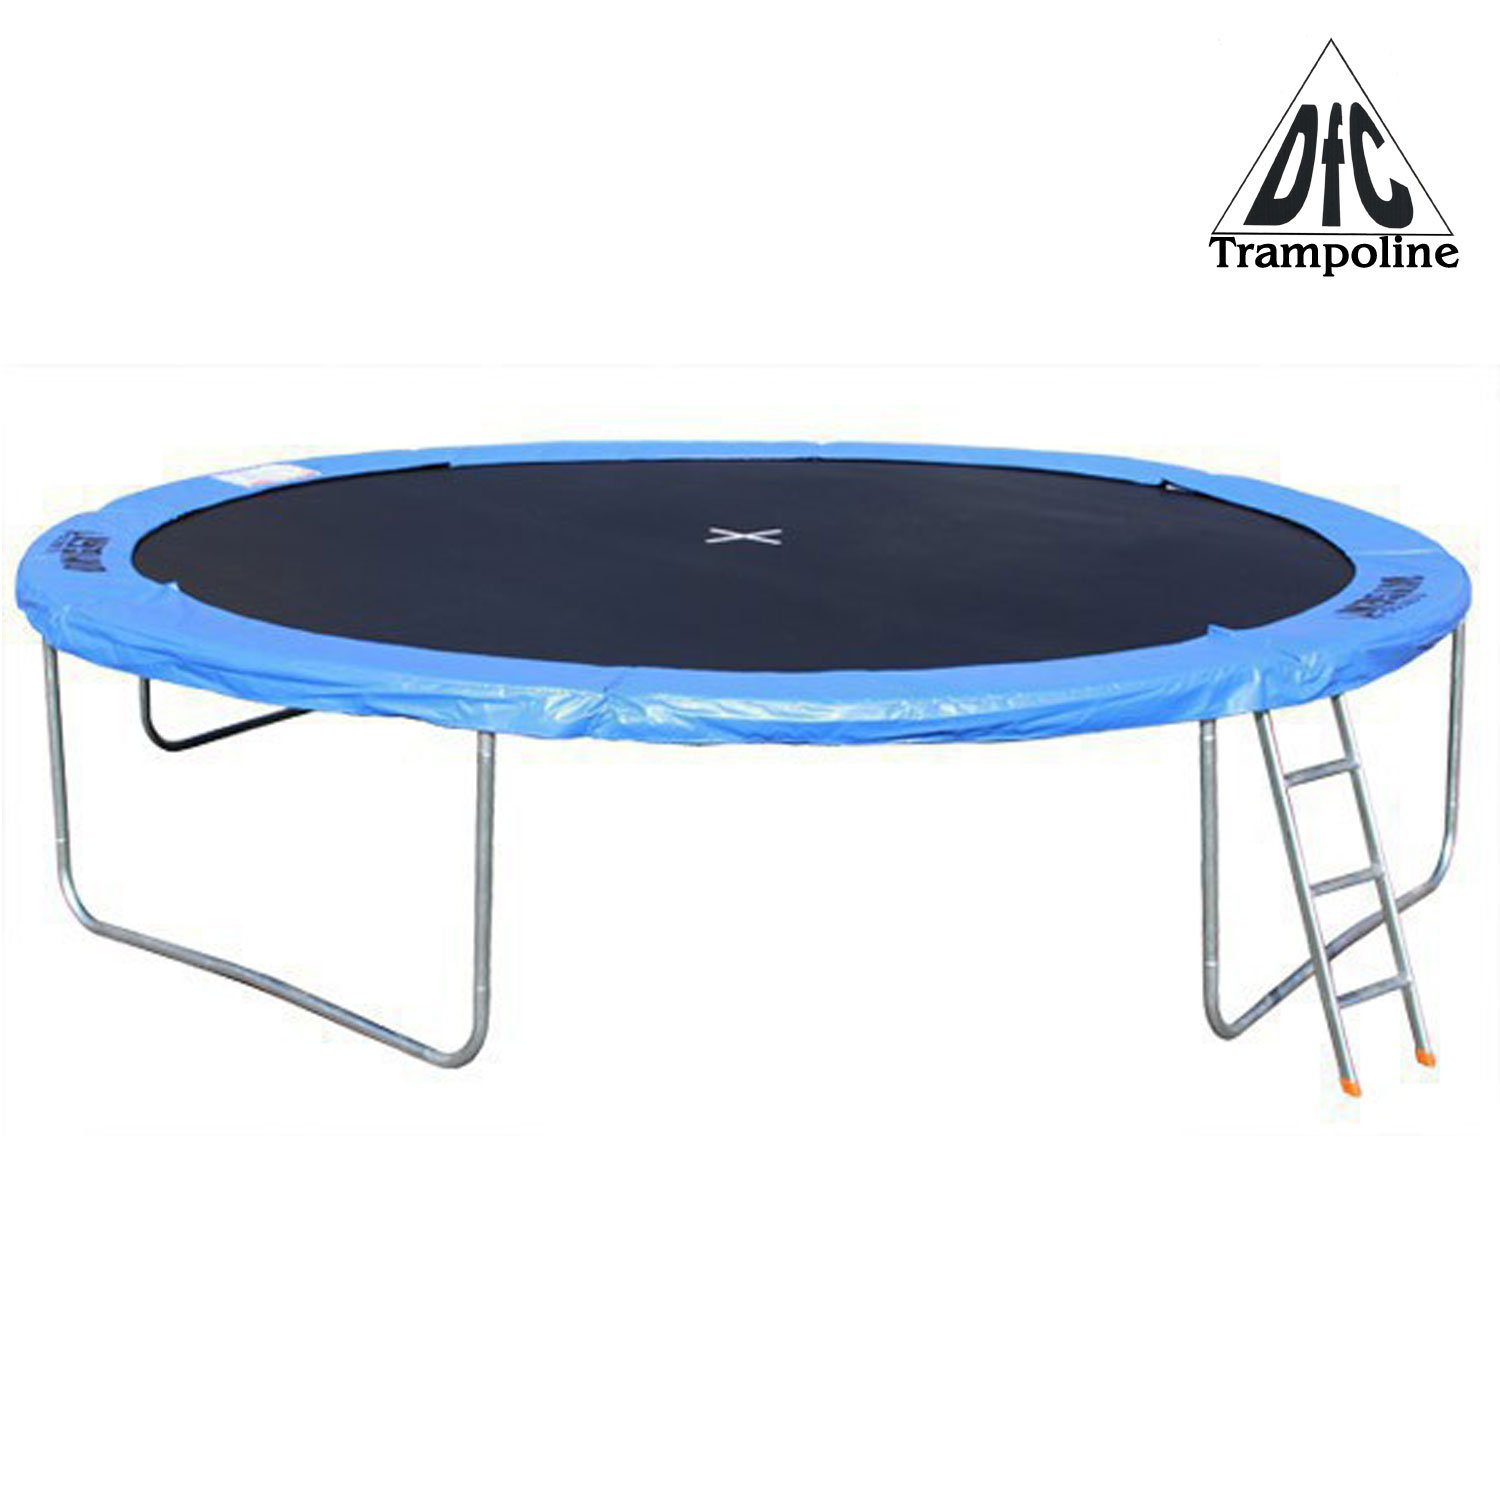 Арт. - БАТУТ  DFC TRAMPOLINE FITNESS 8FT-TR, 6392 рублей<a class='btn btn-primary btn-xs' style='margin-left:7px;' href='http://numberfive.ru/c_main/product_view/id_product/10063 '> Cмотреть </a>